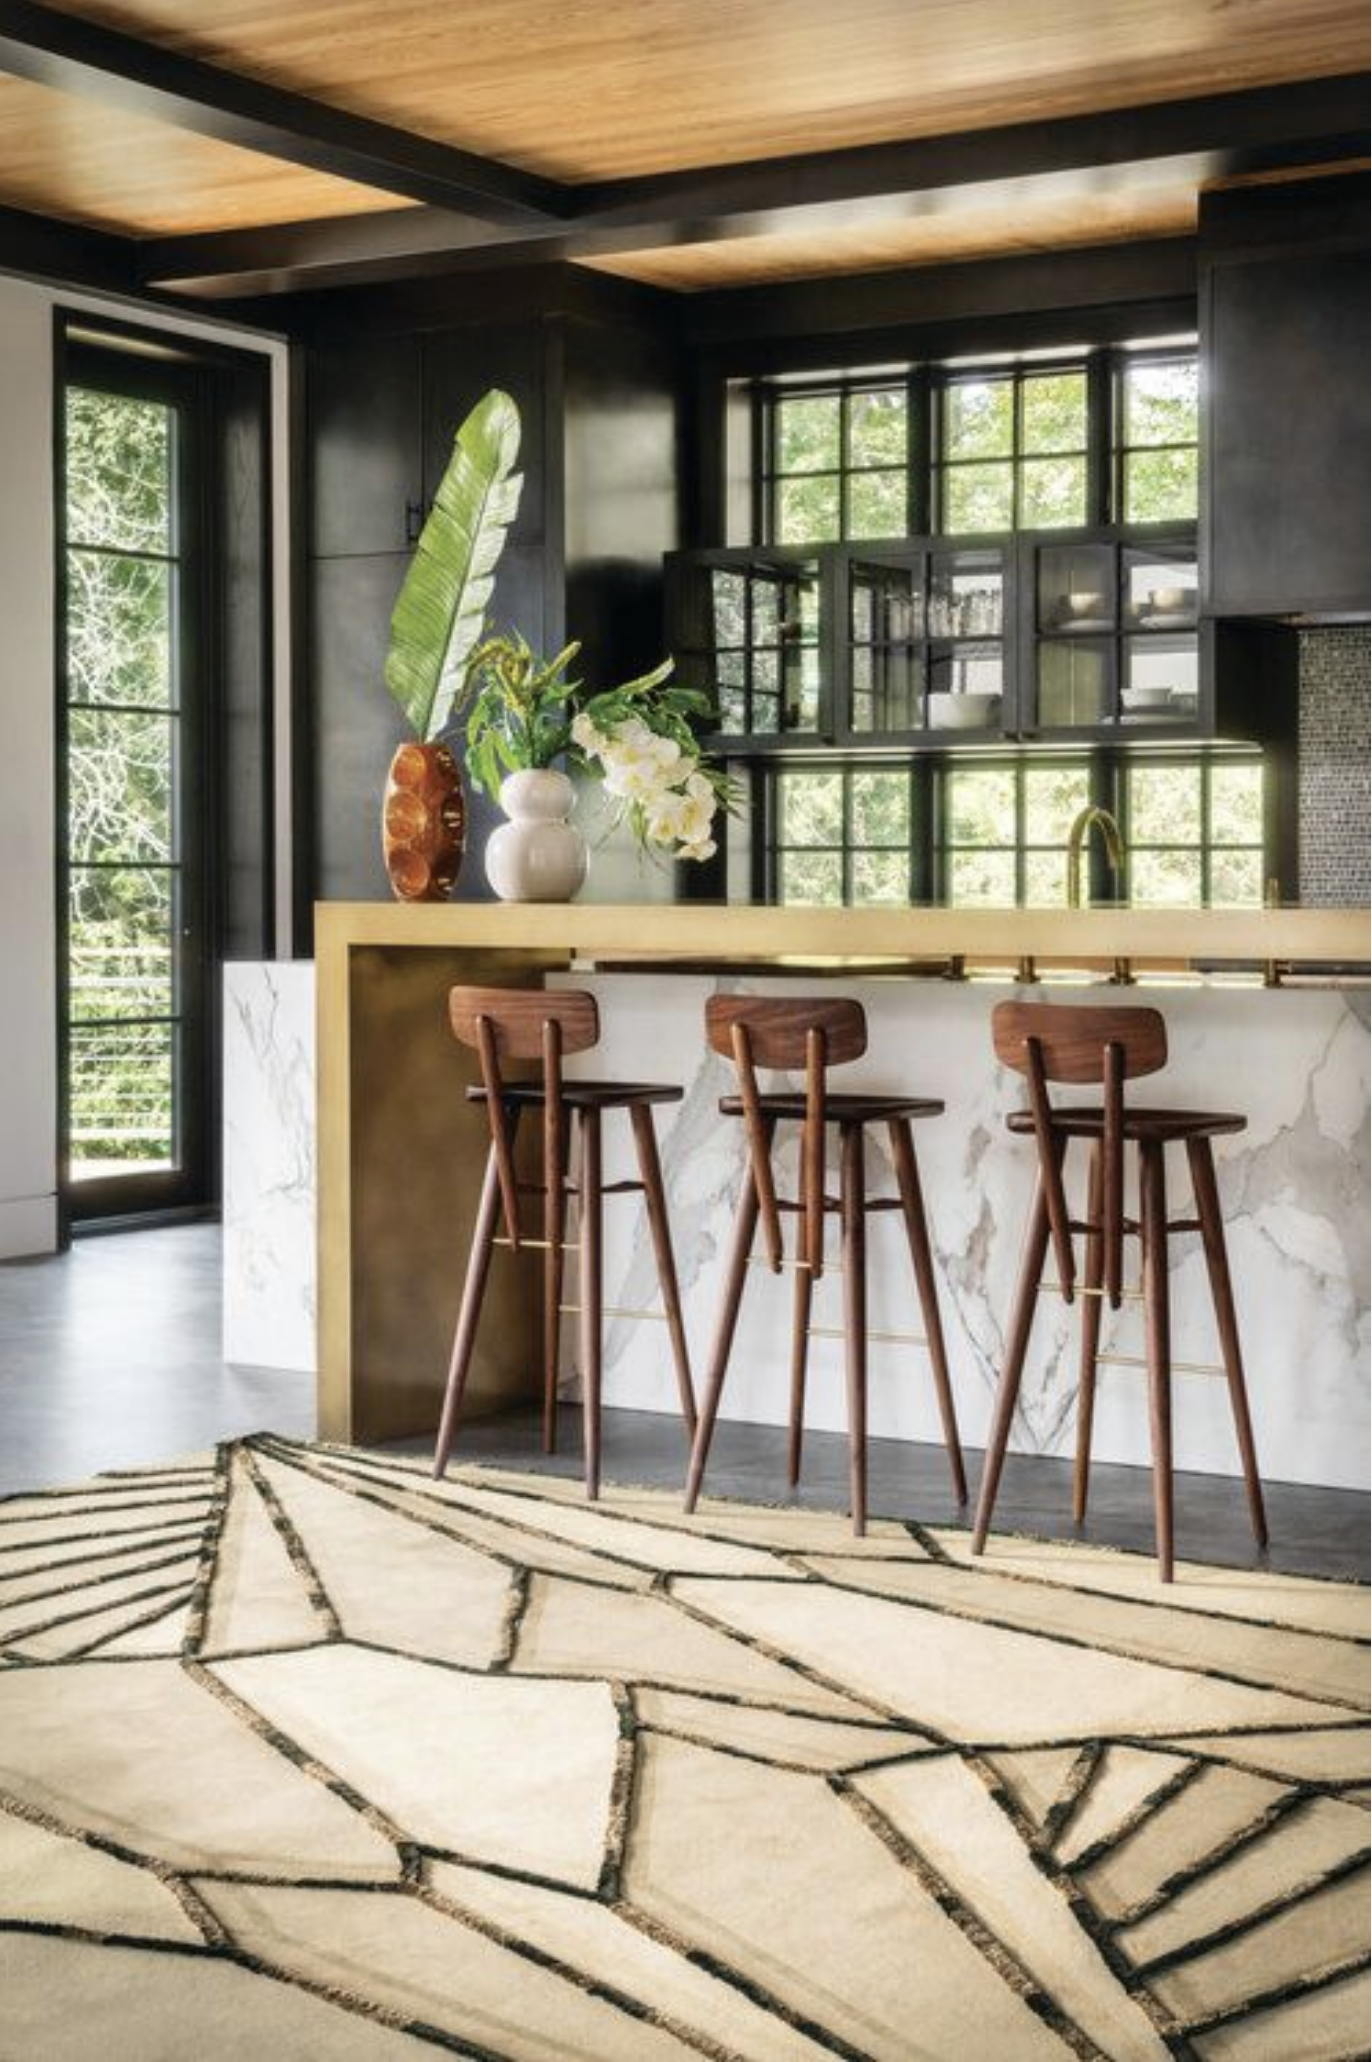 The Most Important Piece Of Design Advice According To The Pros Colorado Homes Lifestyles